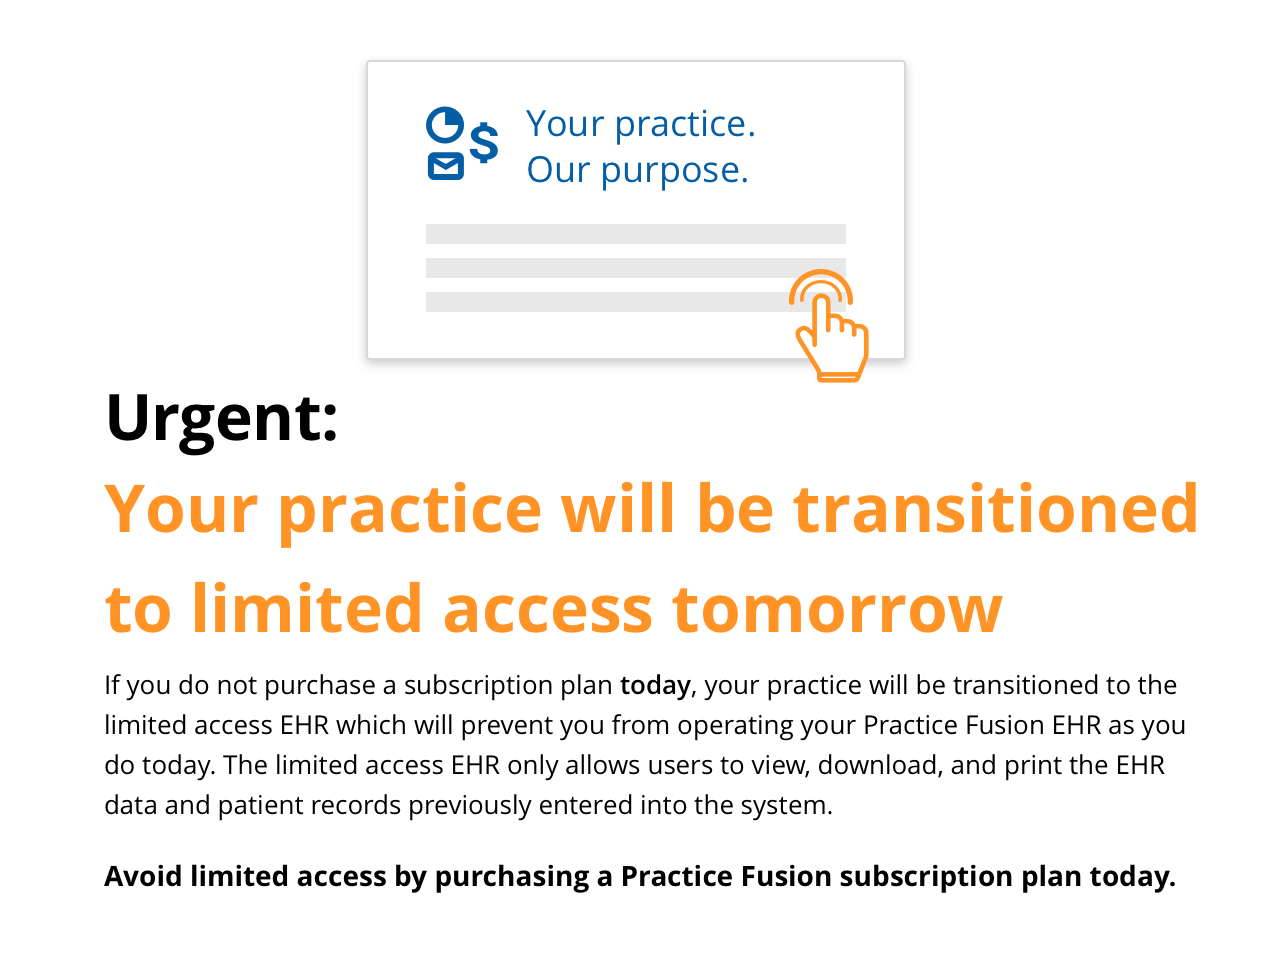 If you do not purchase a subscription plan today, your practice will be transitioned to the limited access EHR which will prevent you from operating your Practice Fusion EHR as you do today. The limited access EHR only allows users to view, download, and print the EHR data and patient records previously entered into the system.